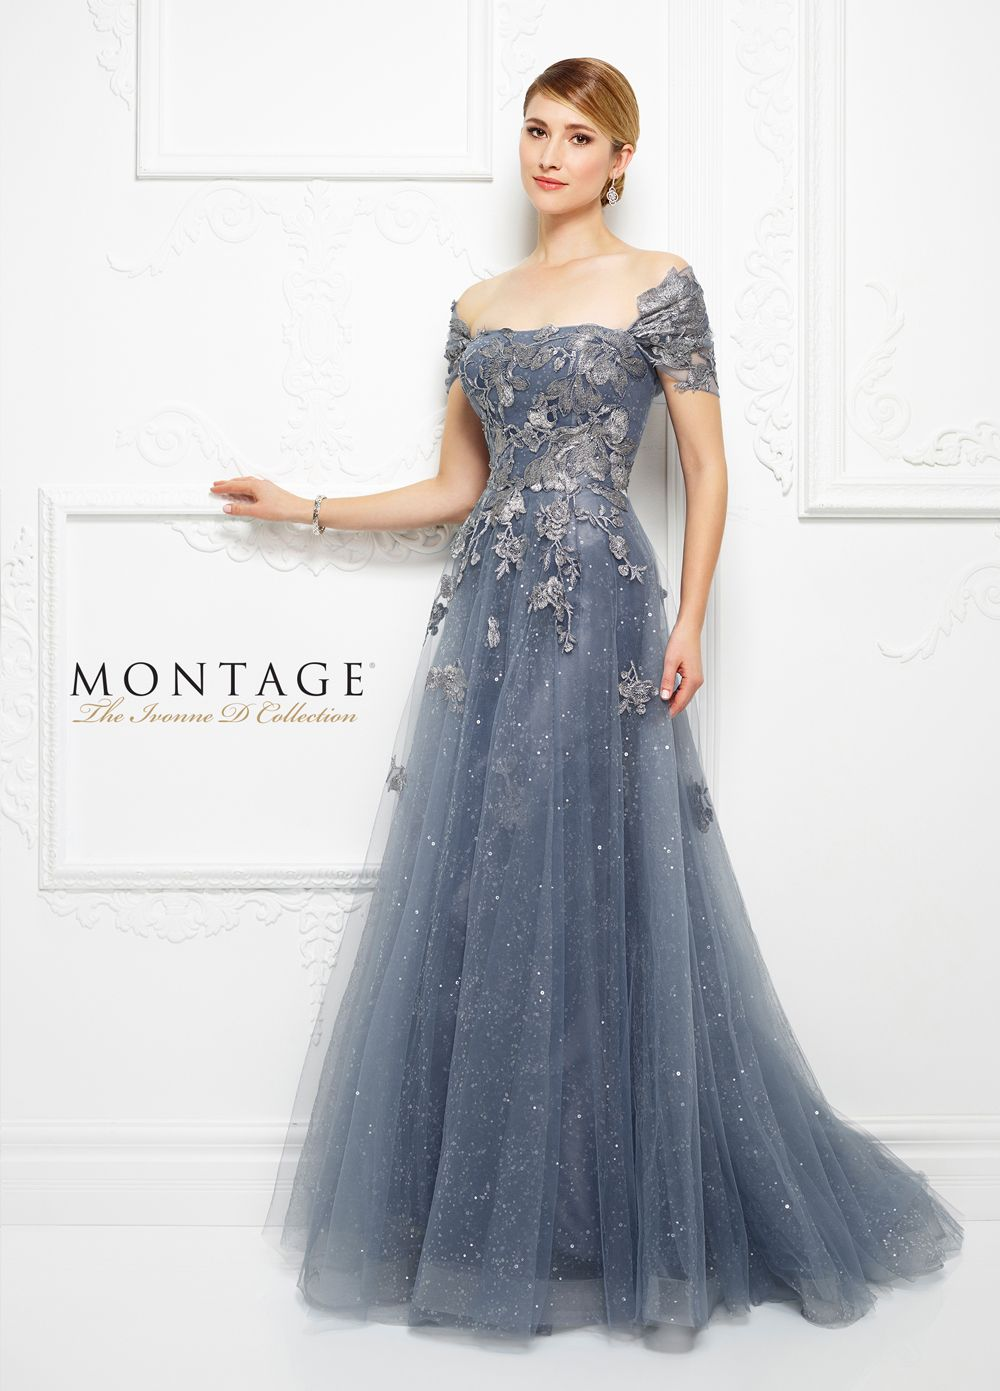 b20b661717 Buy Ivonne D Exclusively for Mon Cheri 217D88 Dress today at  MadameBridal.com authorized retailer store. With every order get your free.